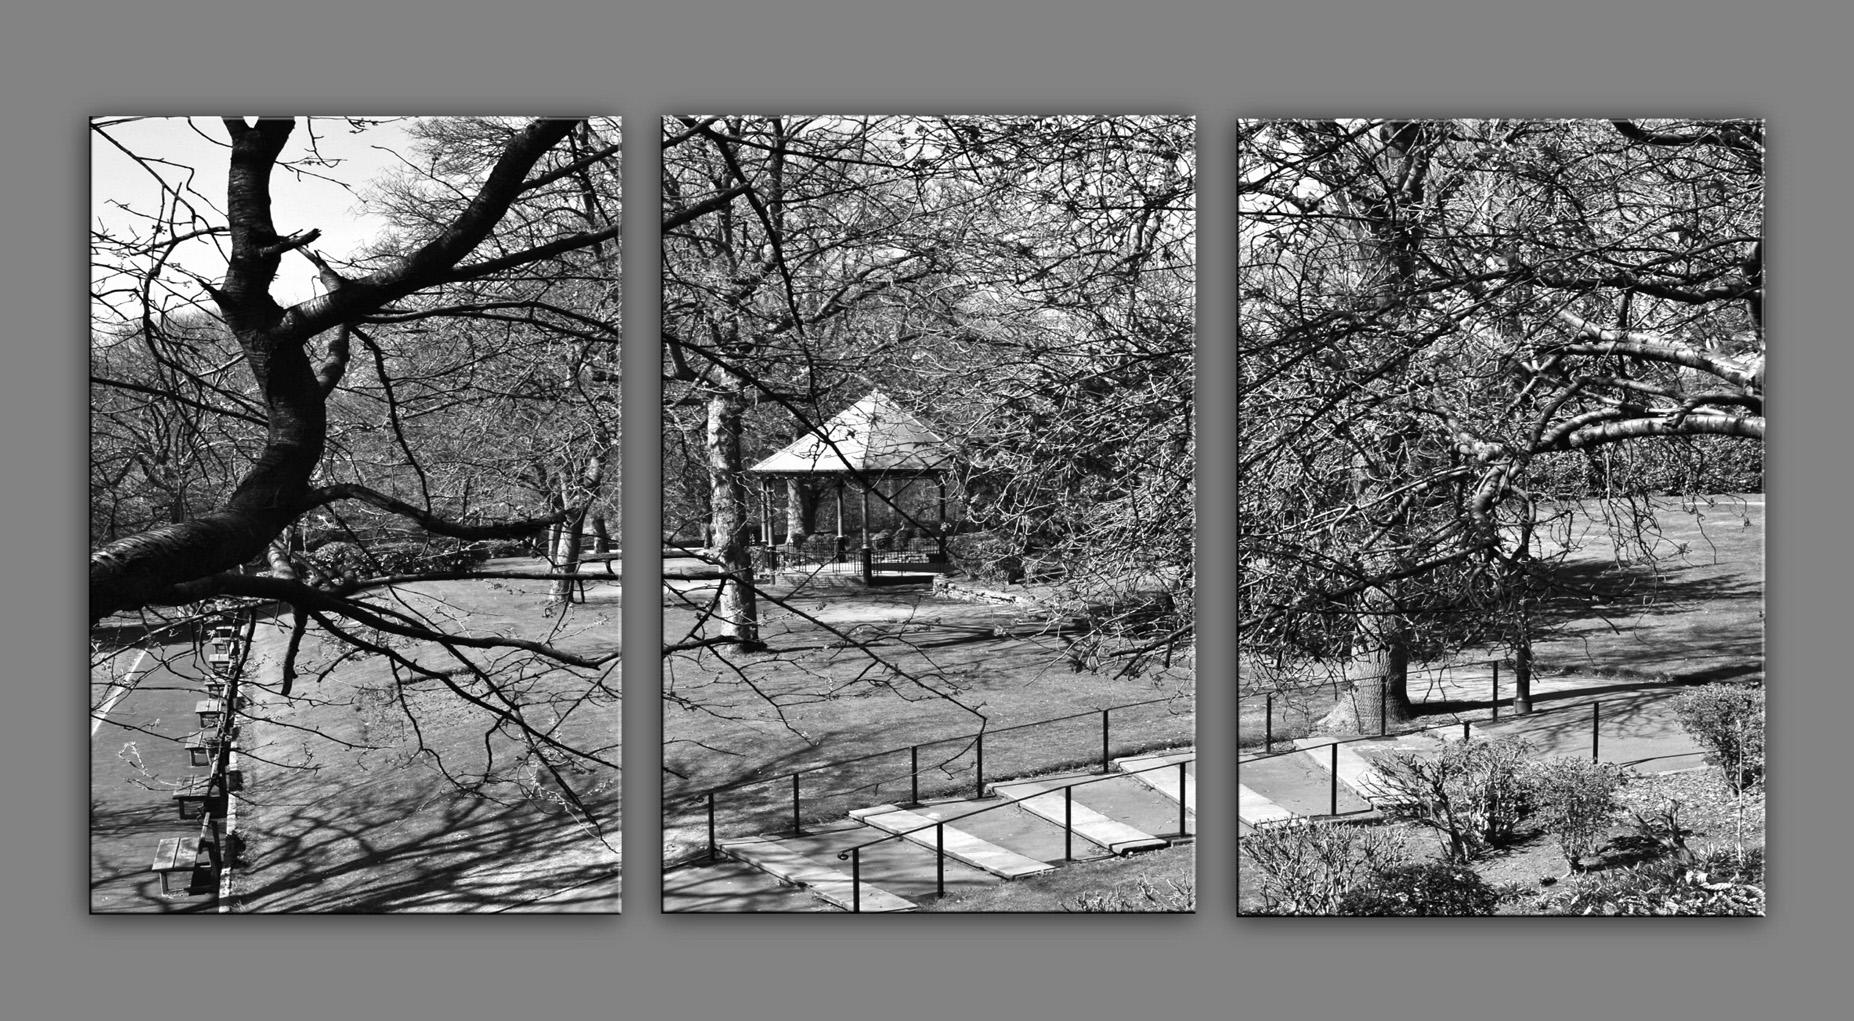 Bandstand in Jubilee Park in black & white